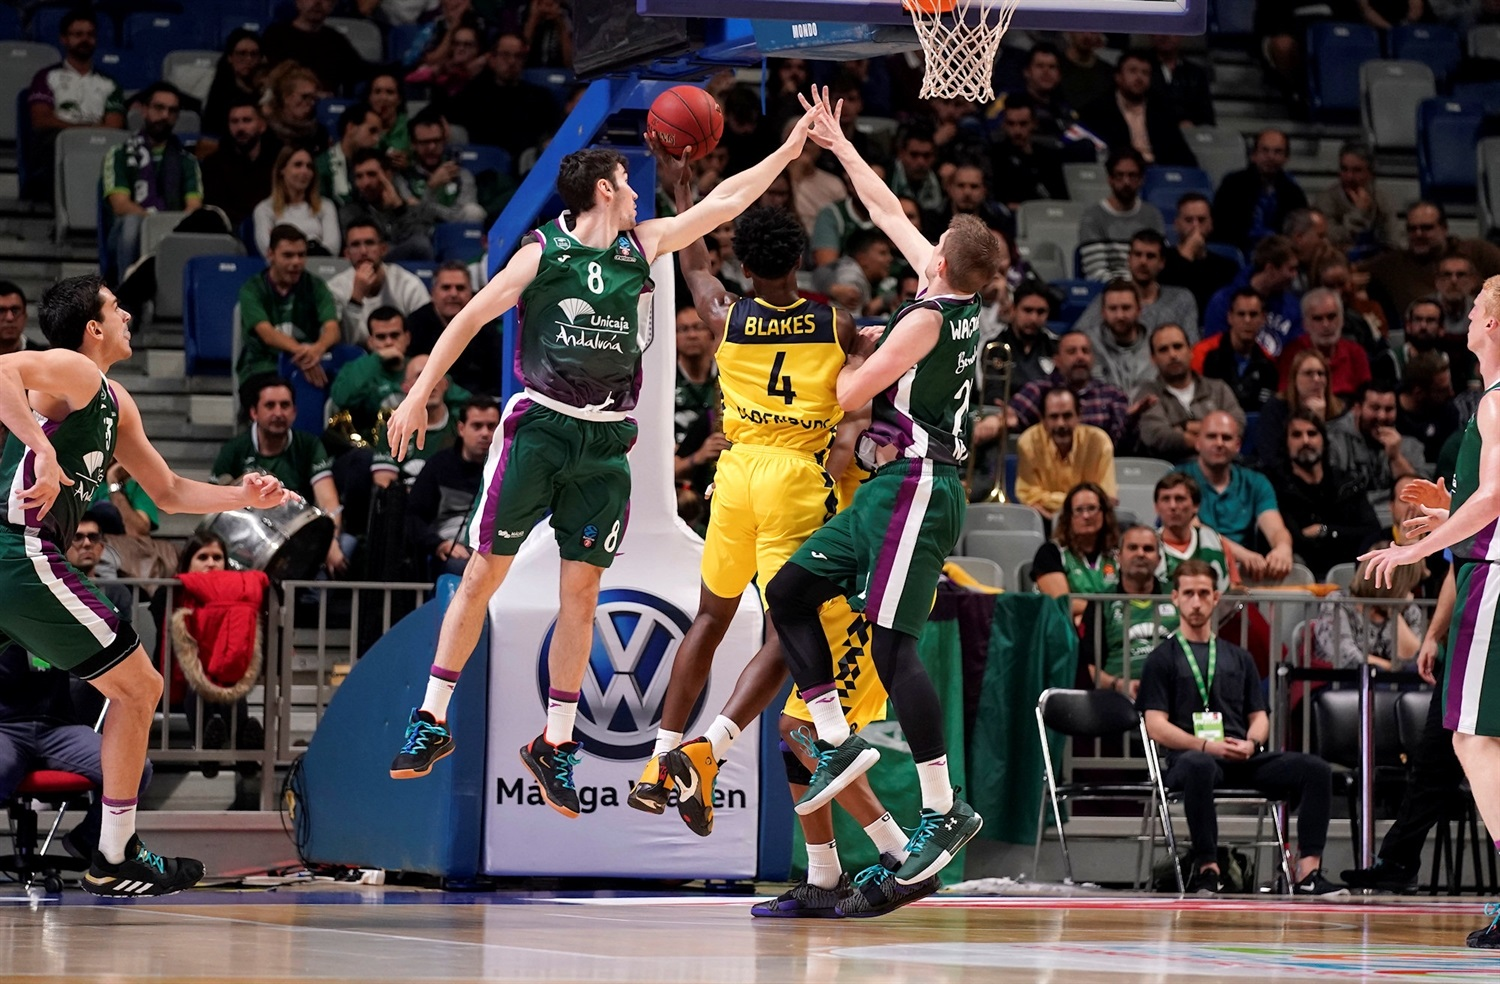 Gerry Blakes - EWE Baskets Oldenburg (photo Mariano Pozo - Unicaja) - EC19